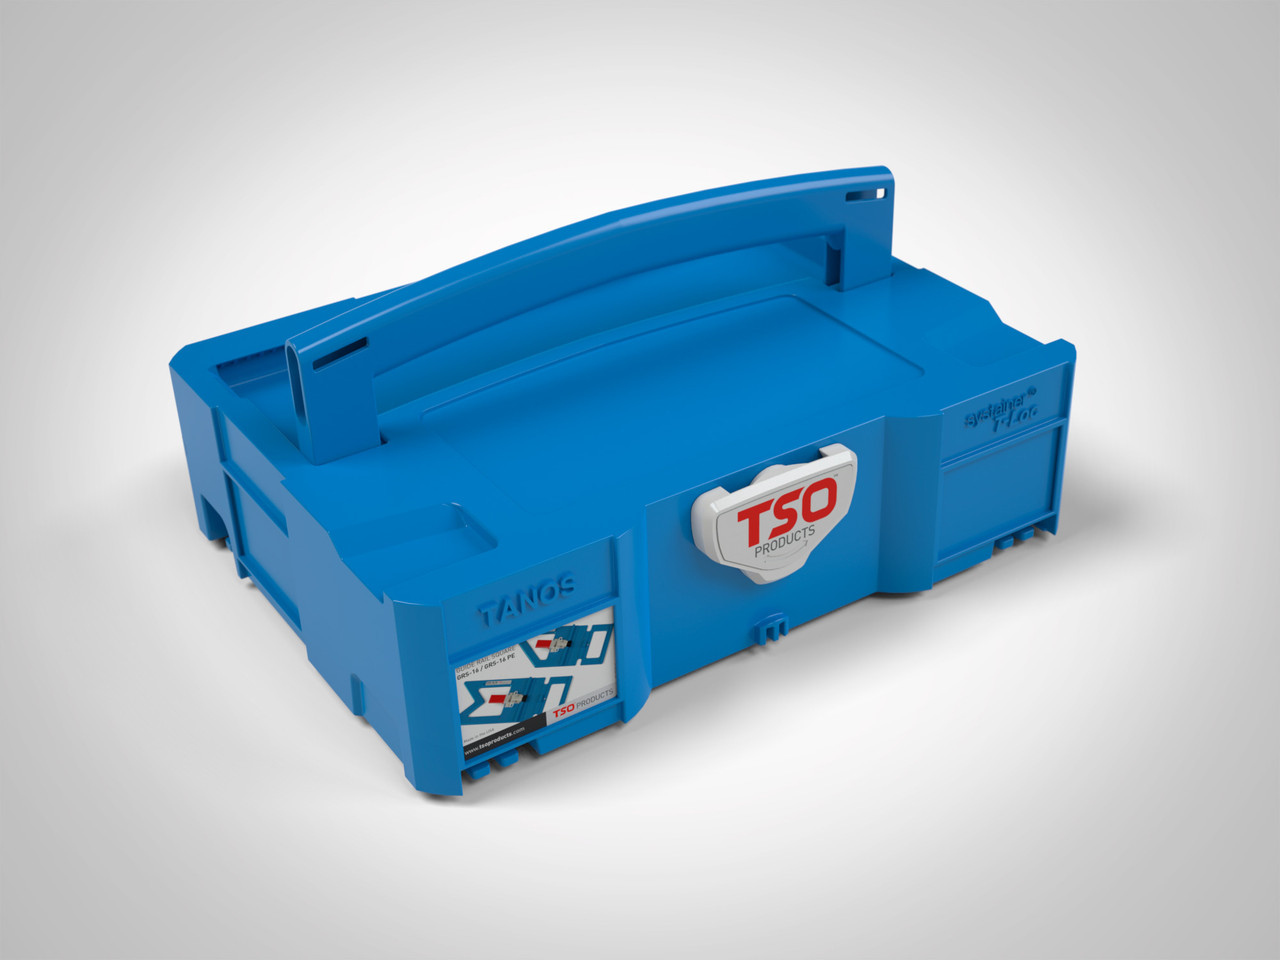 The TSO Products Limited Edition Systainer is a SYS1 T-LOC with custom TSO branded latch.